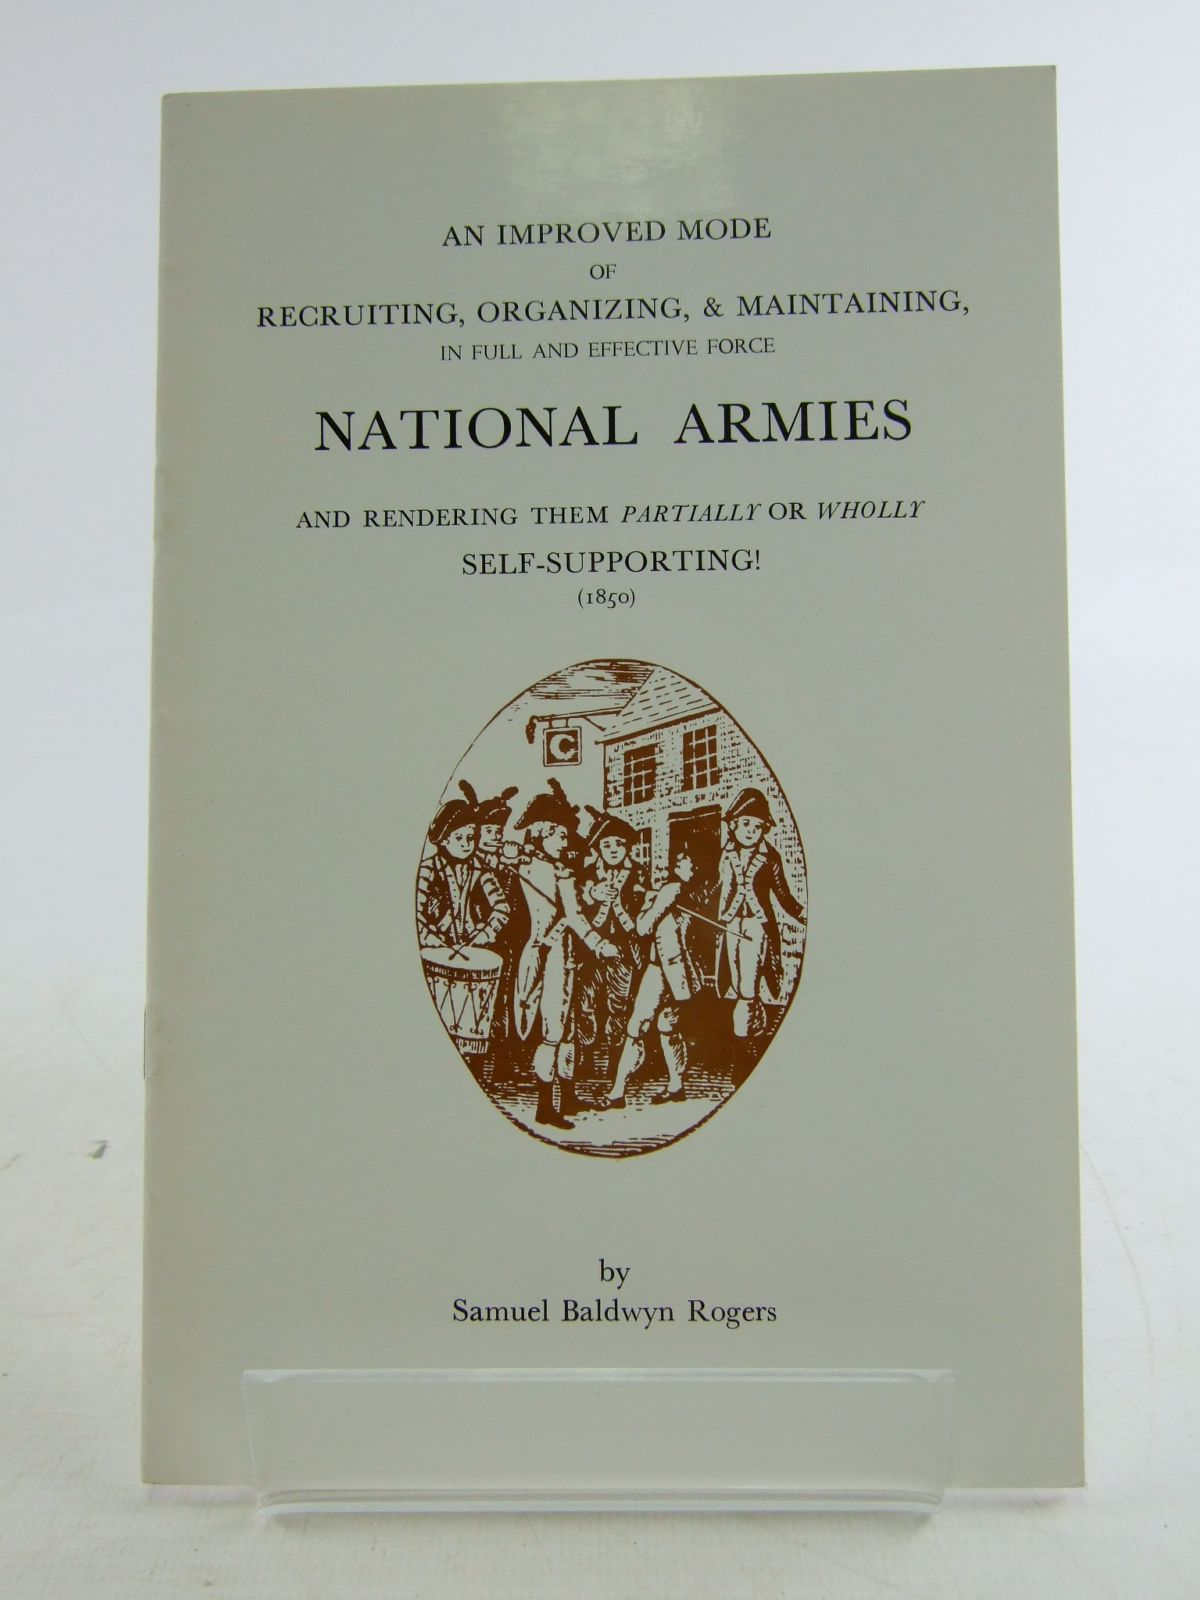 Photo of AN IMPROVED MODE OF RECRUITING, ORGANISING, & MAINTAINING, NATIONAL ARMIES written by Rogers, Samuel Baldwyn published by Moss Rose Press (STOCK CODE: 1806865)  for sale by Stella & Rose's Books